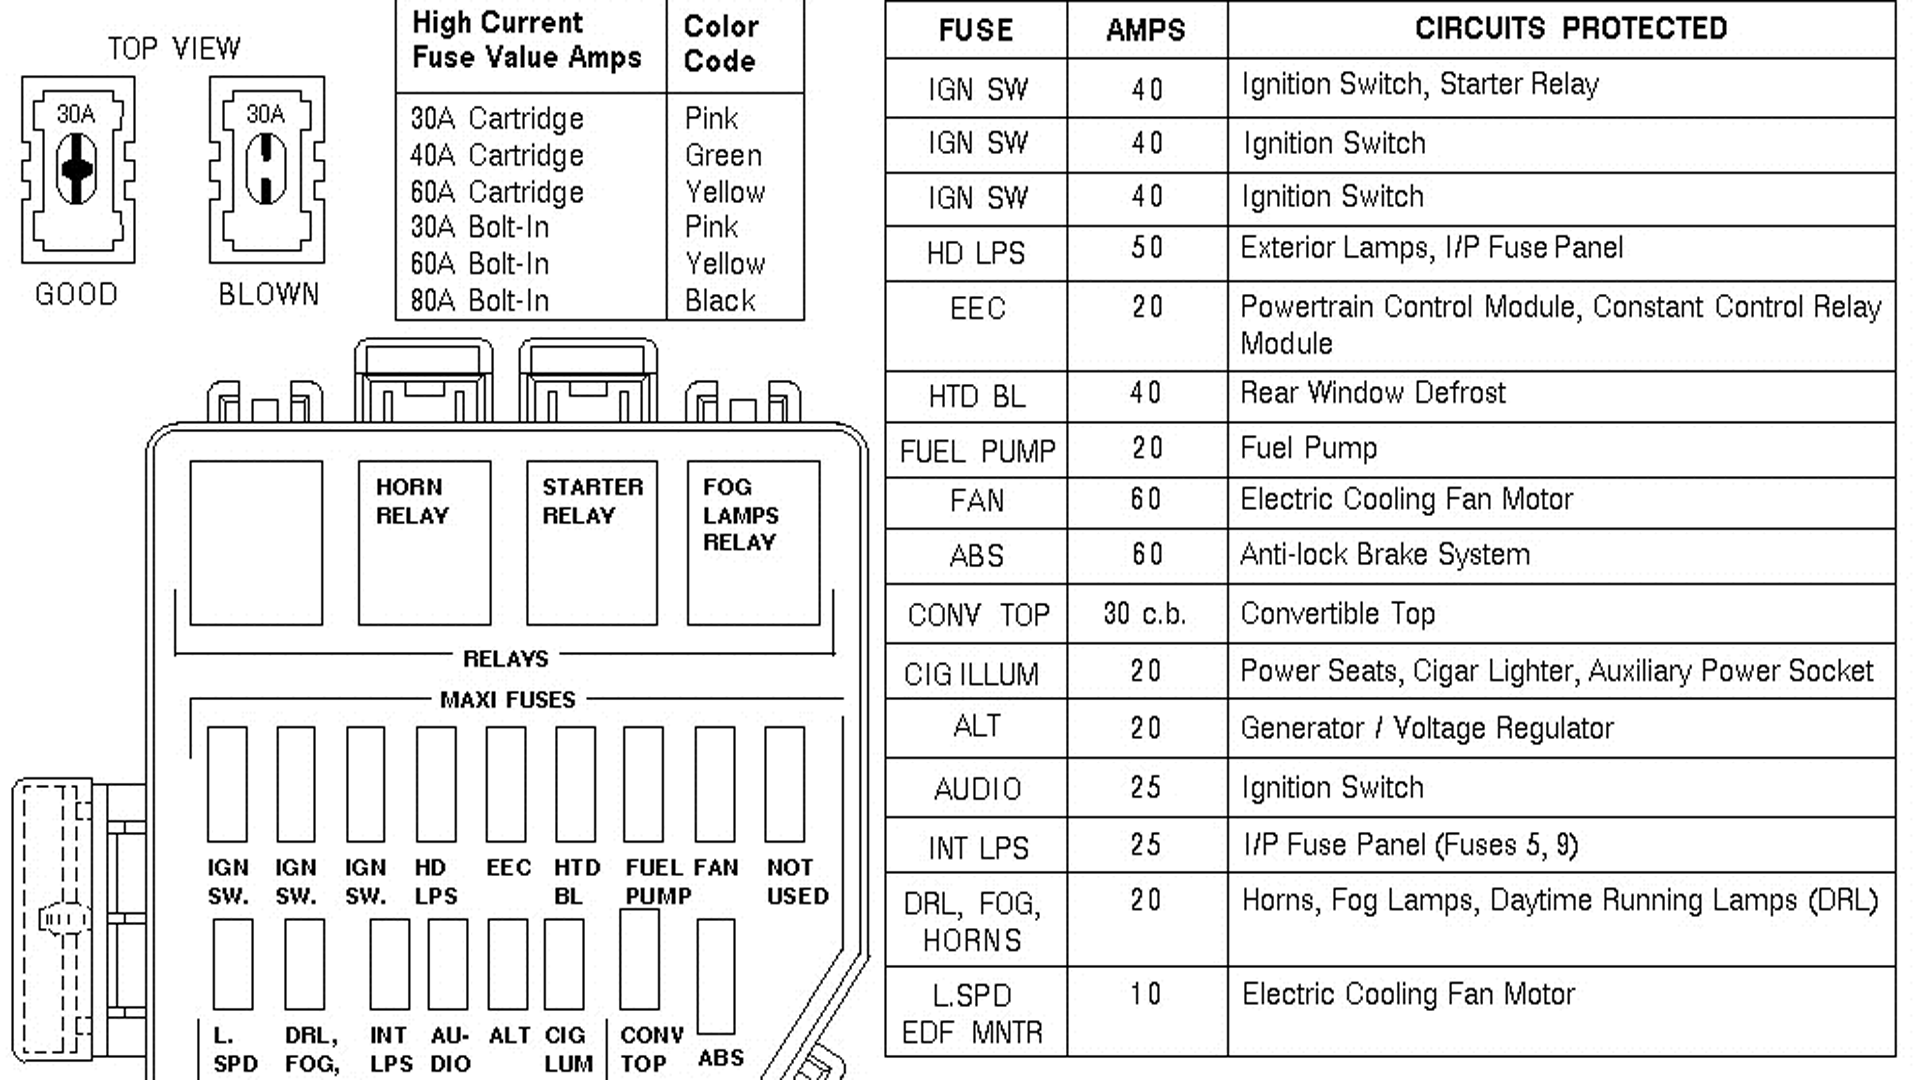 Ford Mustang V6 and Mustang GT 1994-2004: Fuse Box Diagram